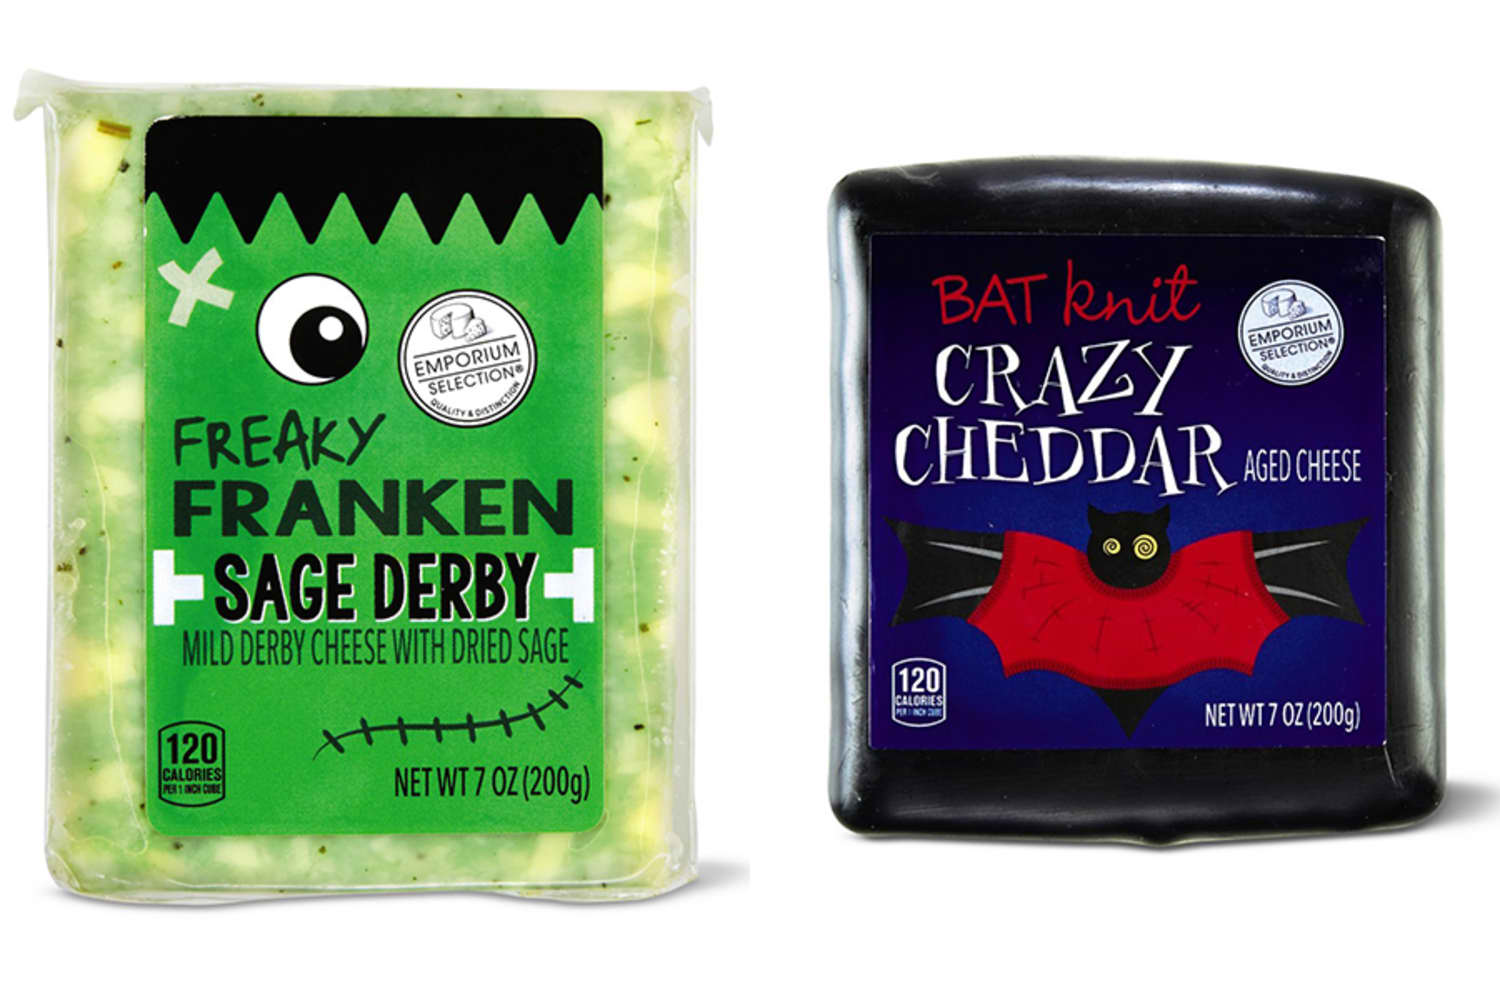 ALDI's New Limited-Edition Cheeses for Halloween Are Scary Good